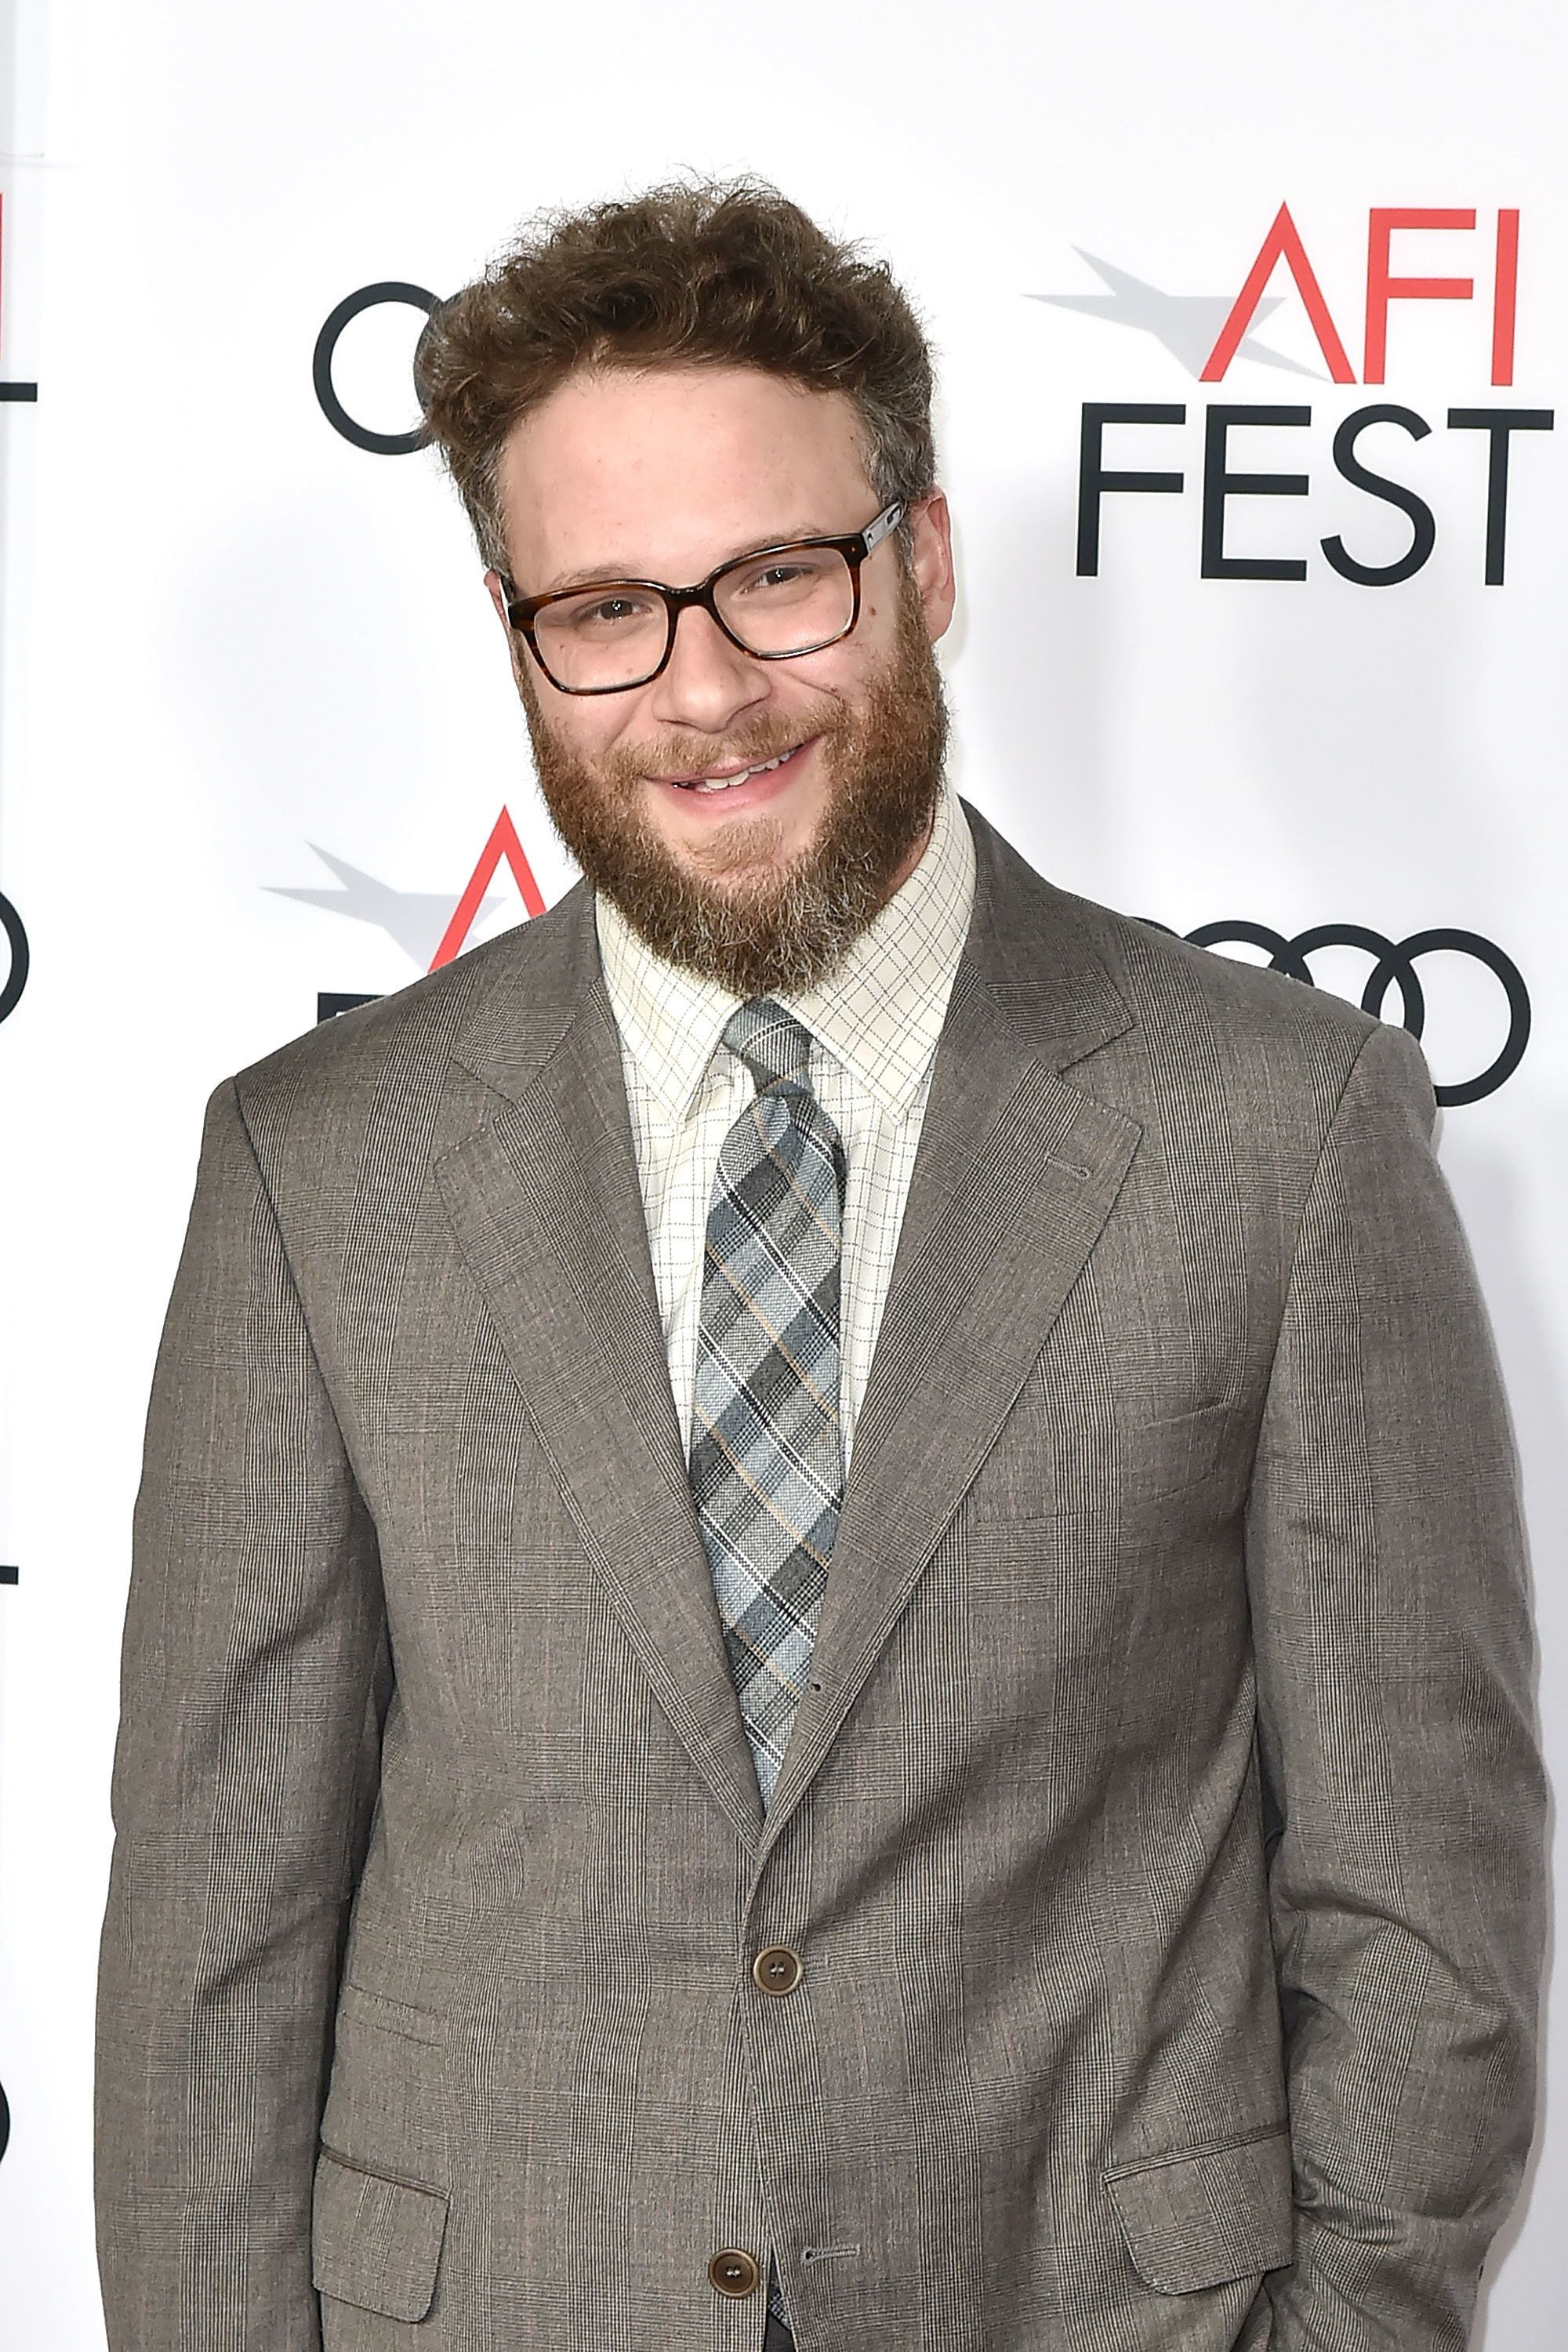 HOLLYWOOD, CA - NOVEMBER 12:  Seth Rogen attends the AFI FEST 2017 Presented By Audi - Screening Of 'The Disaster Artist' - Arrivals at TCL Chinese Theatre on November 12, 2017 in Hollywood, California.  (Photo by David Crotty/Patrick McMullan via Getty Images)